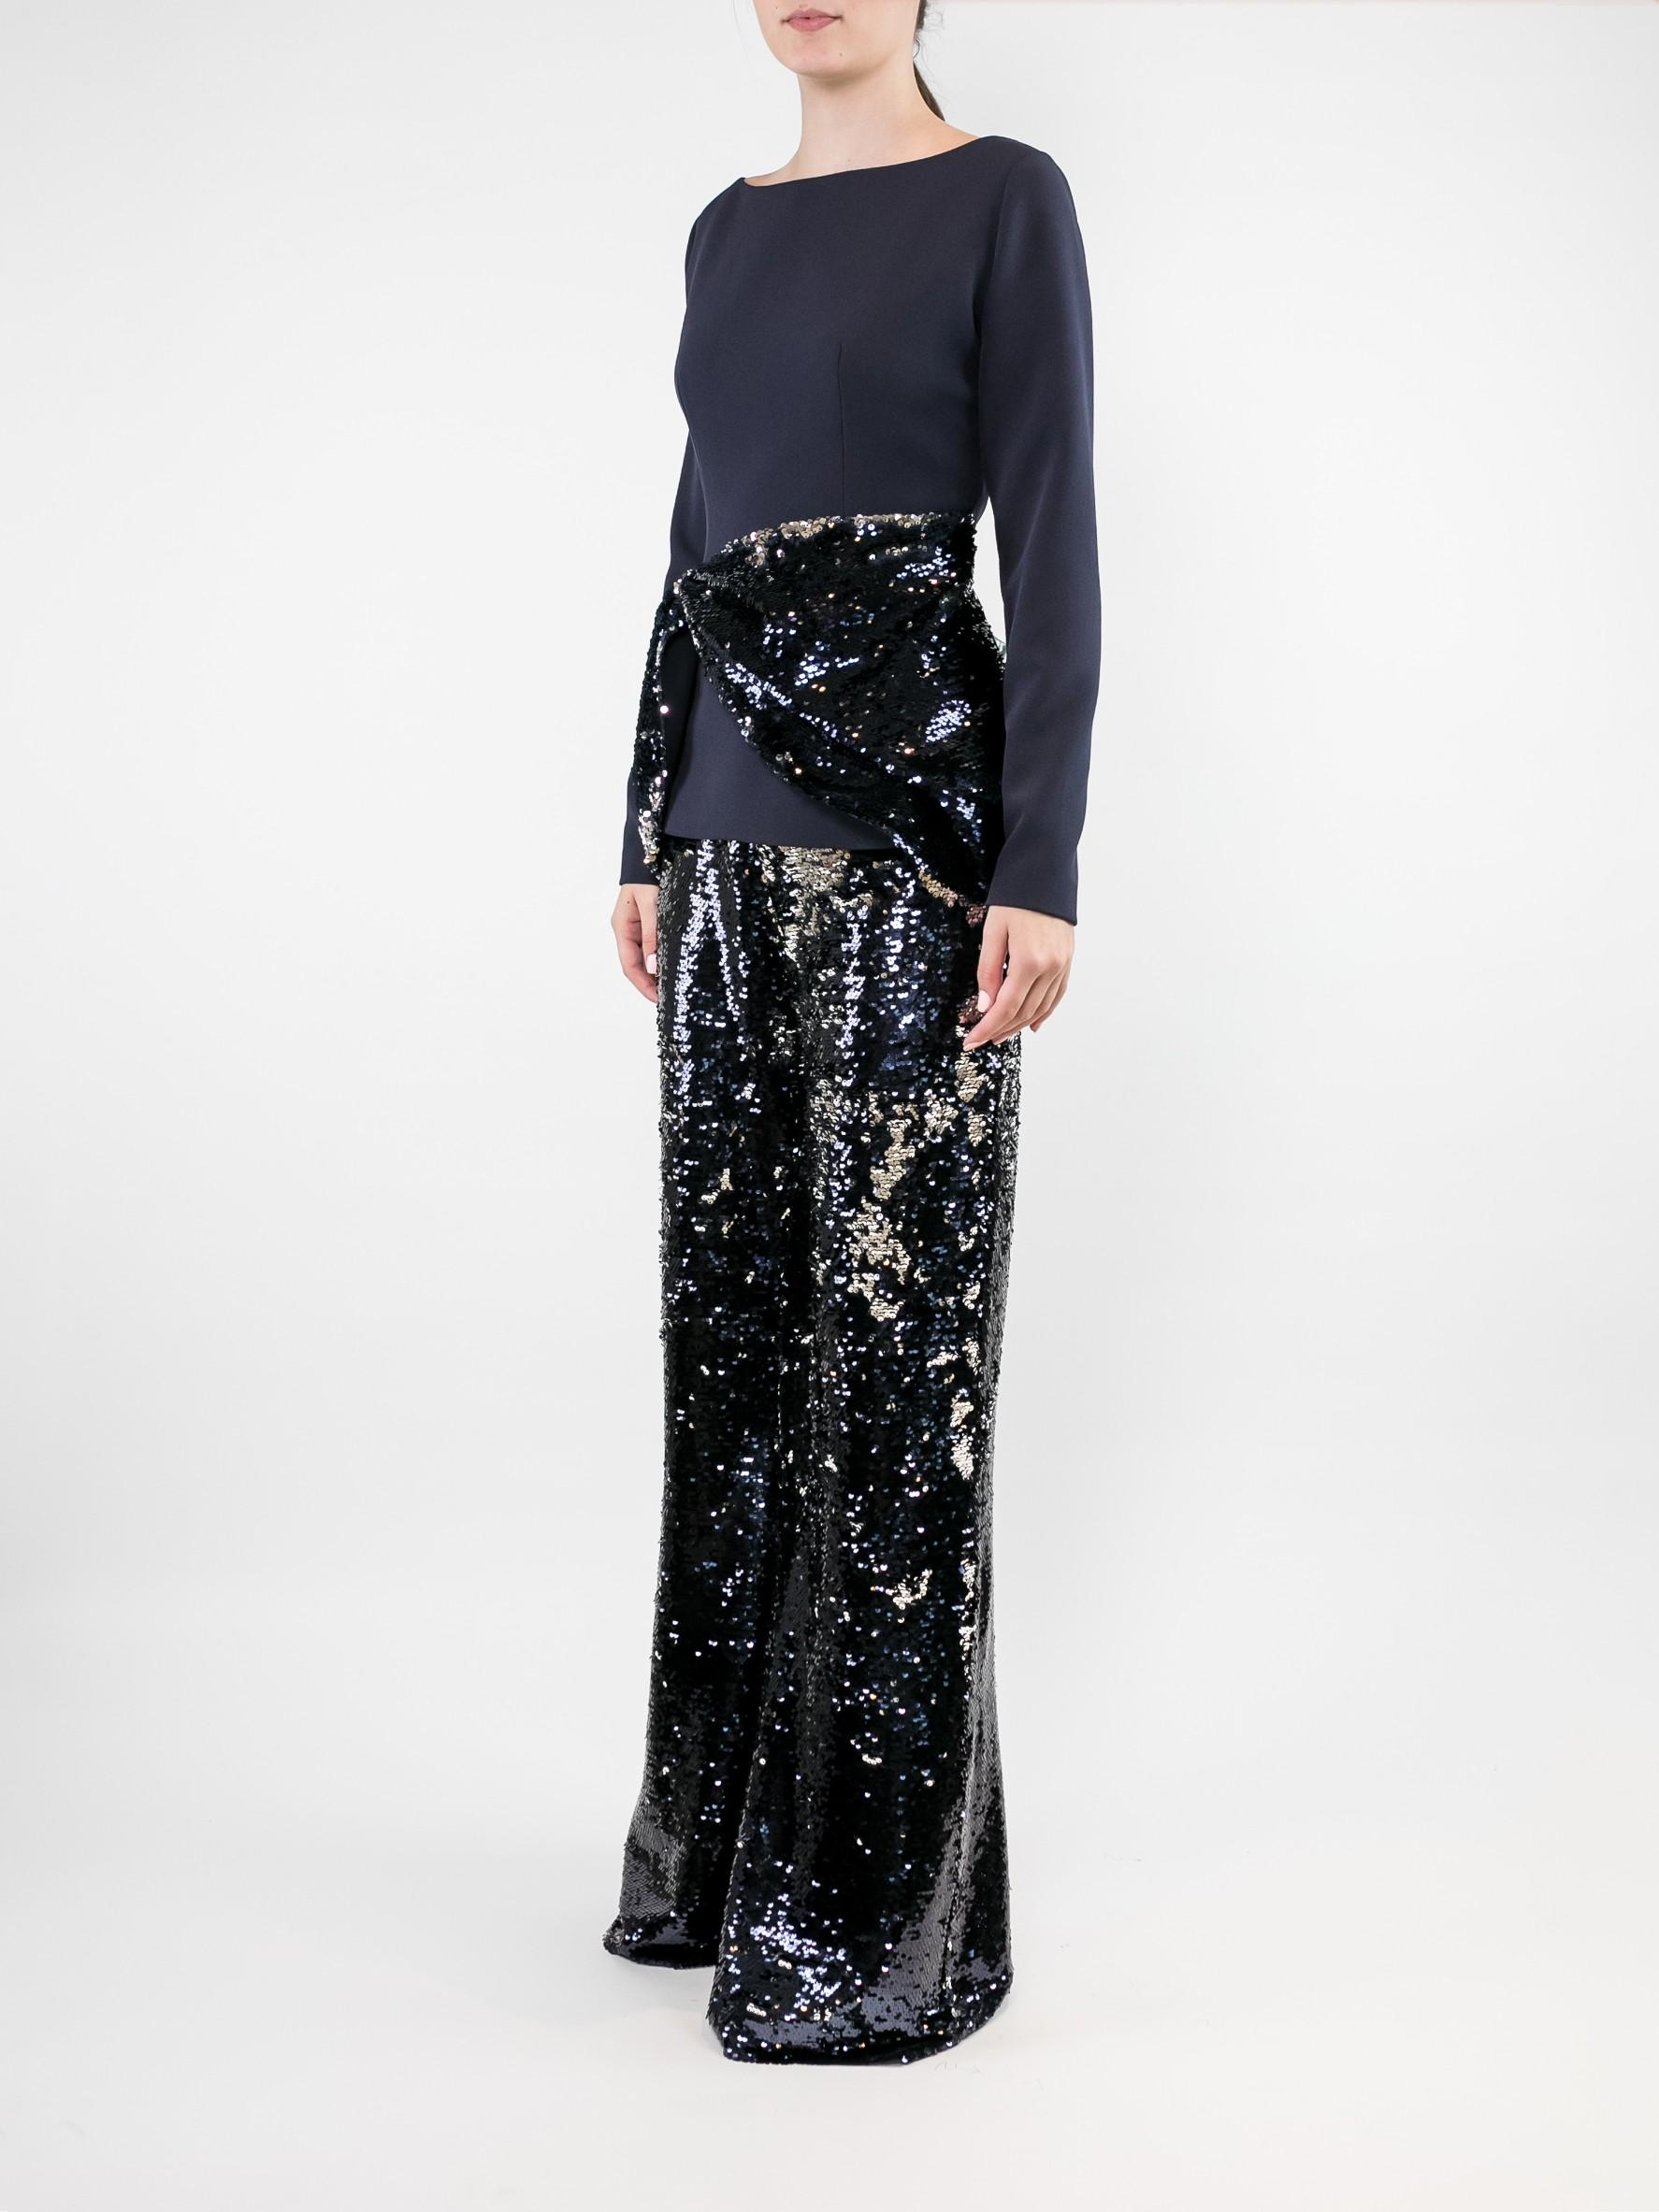 Long Sleeve Heavy Crepe Sequin Top With Pant Item # T101-2/P38-1